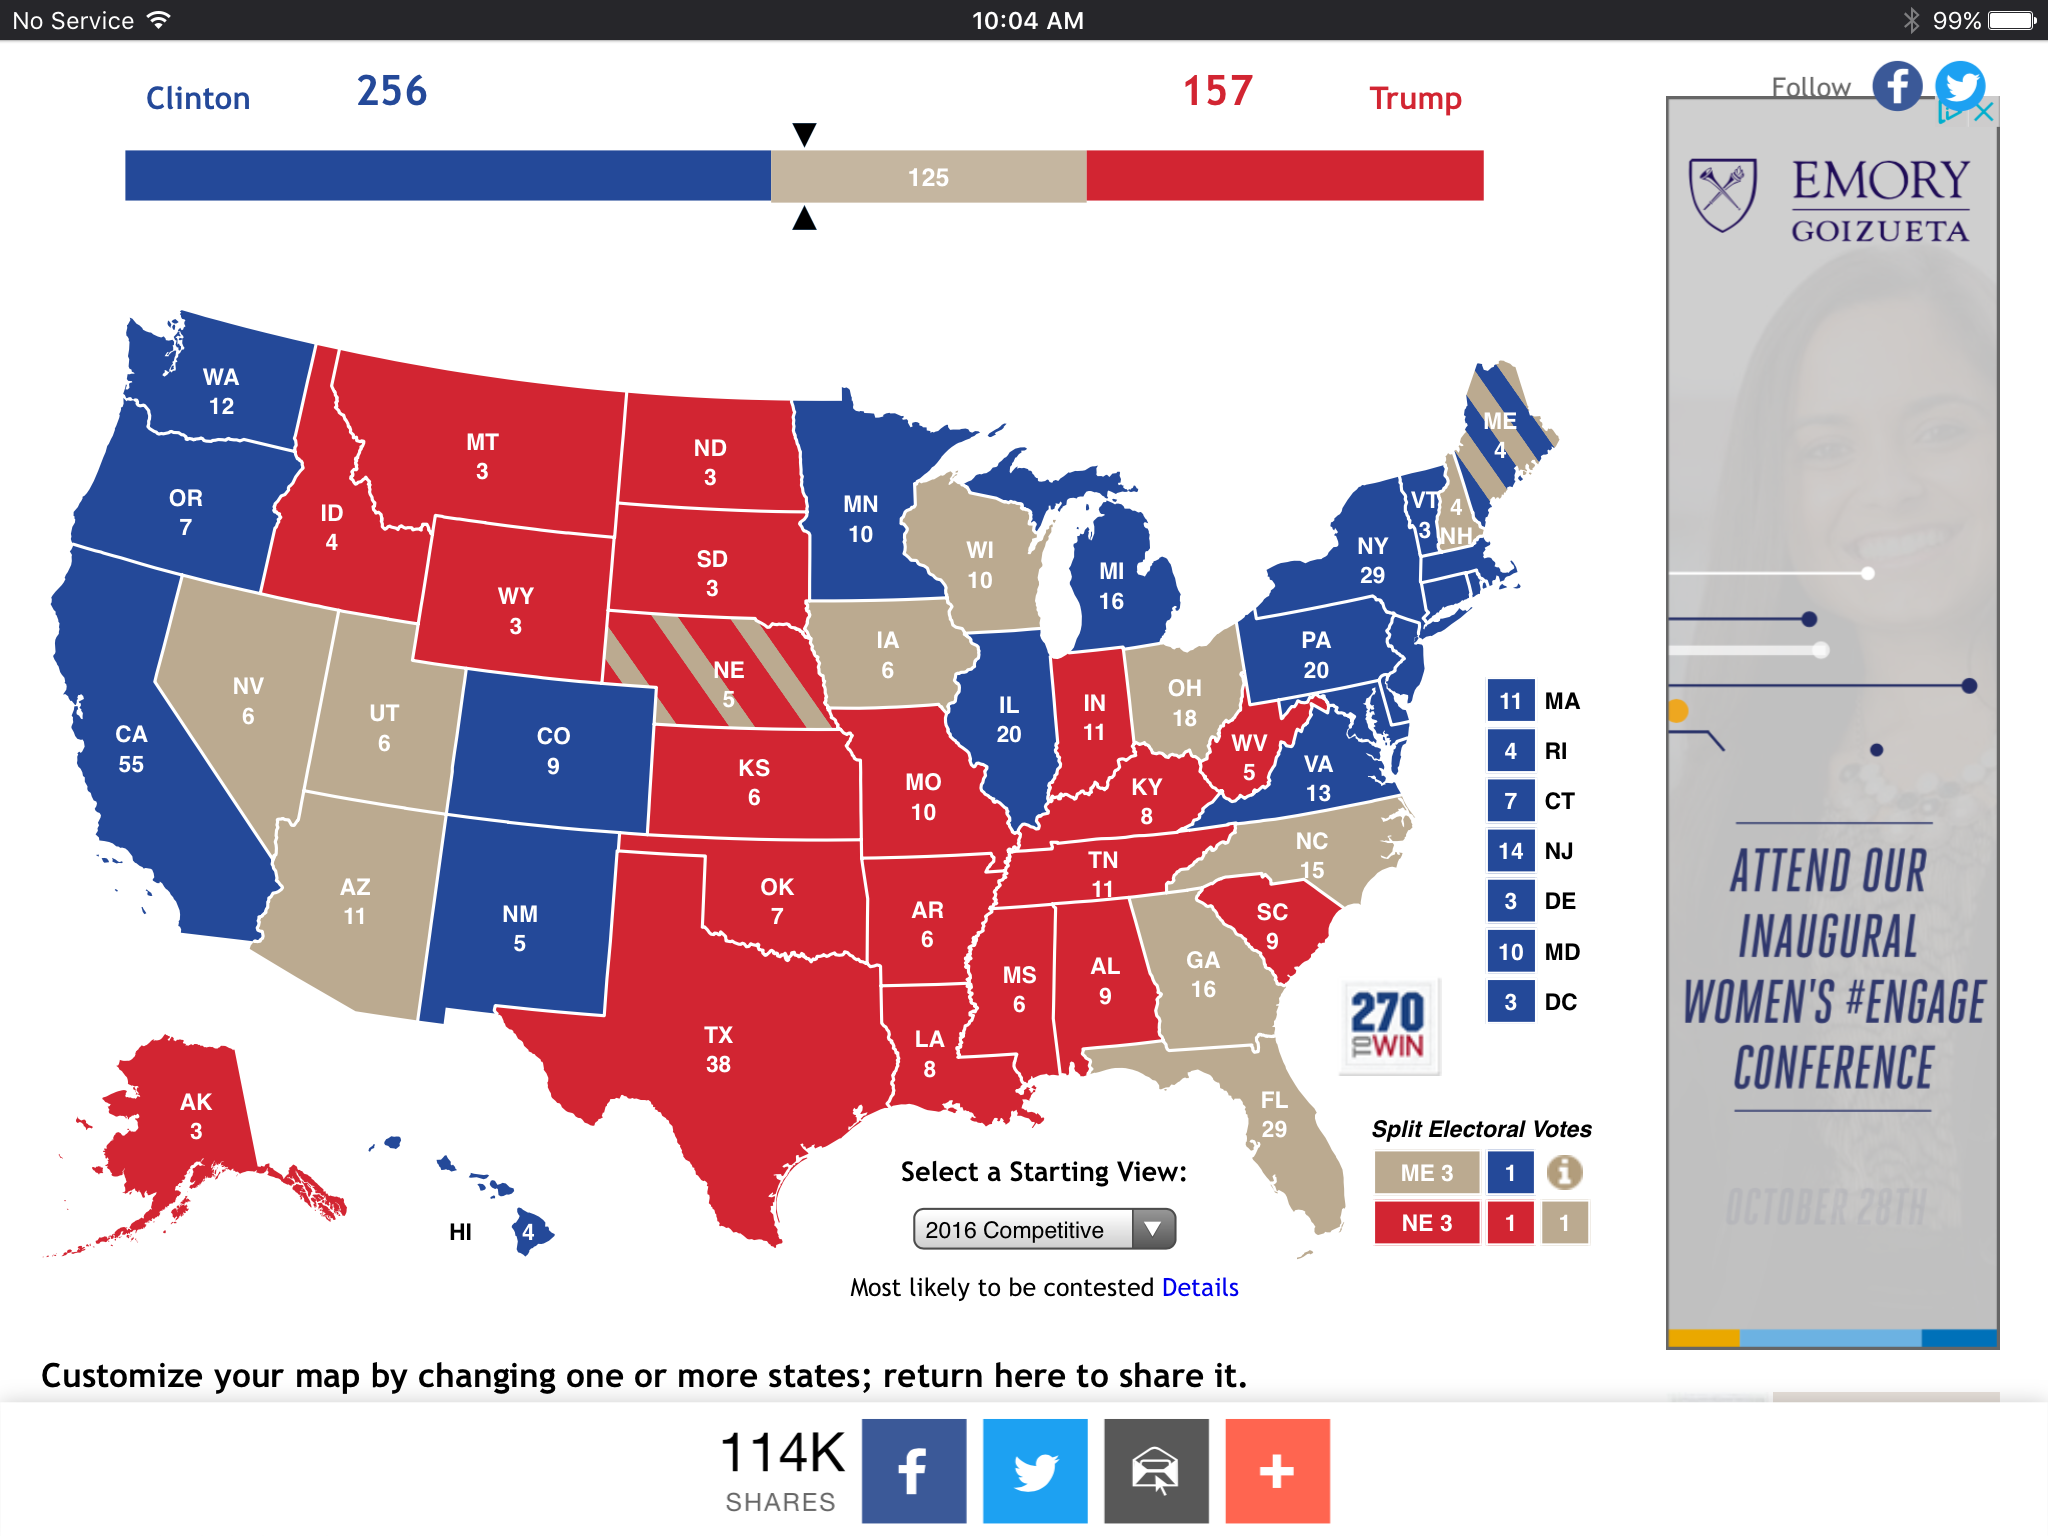 To win the presidency - one must have 270 electoral votes. Its not even close.